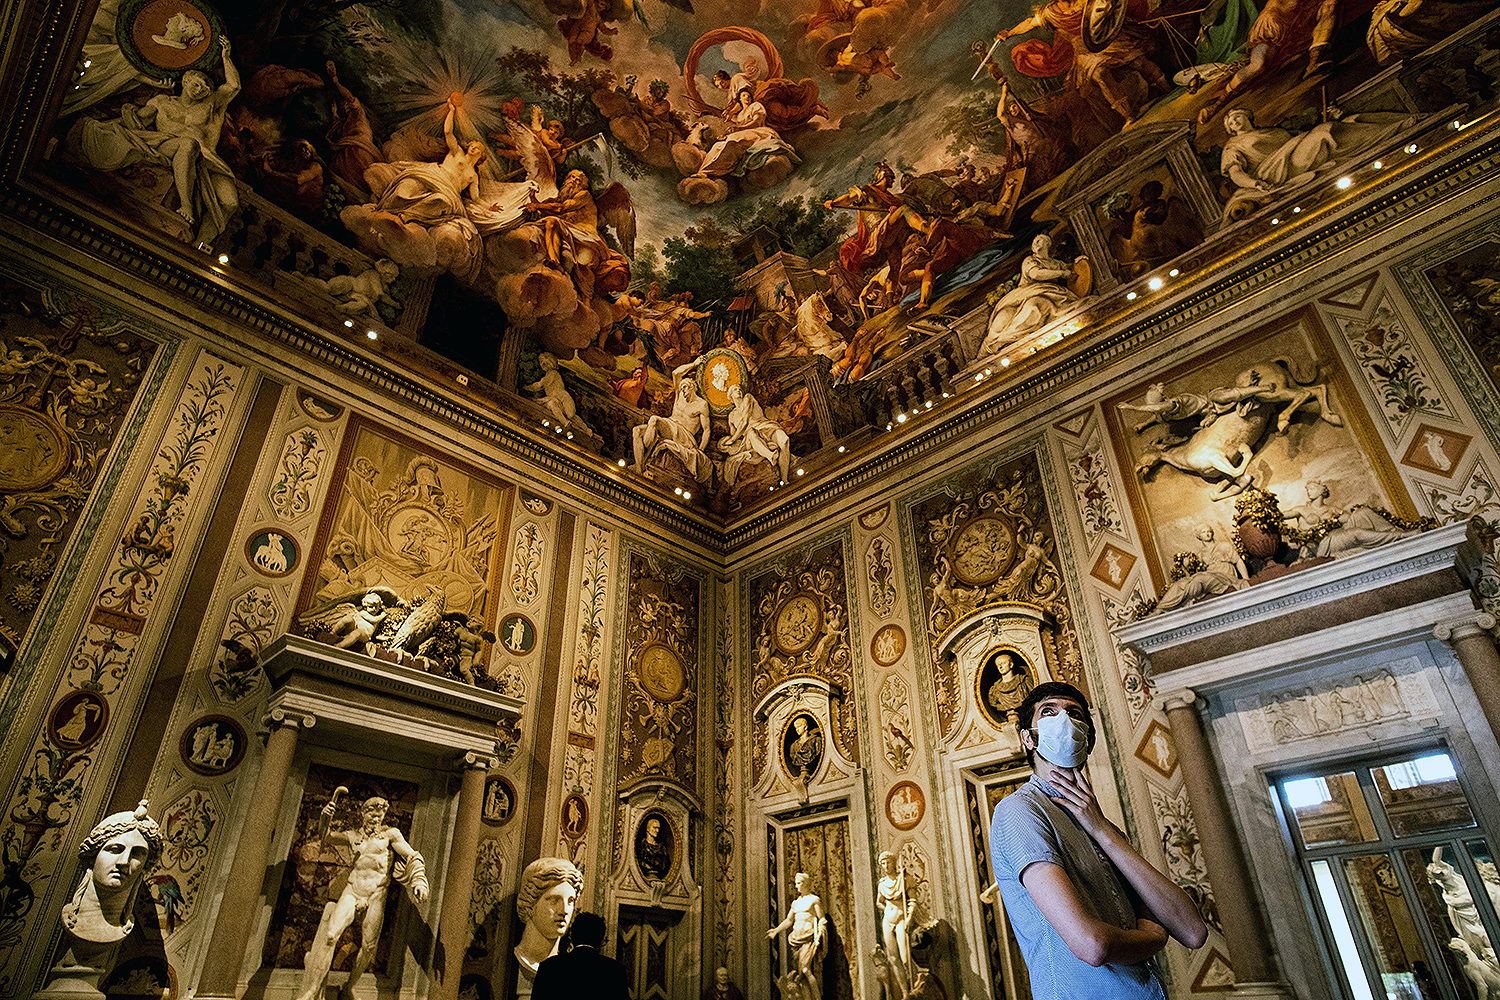 A man visits the newly reopened Galleria Borghese art gallery in Rome on May 19. TIZIANA FABI/AFP via Getty Images